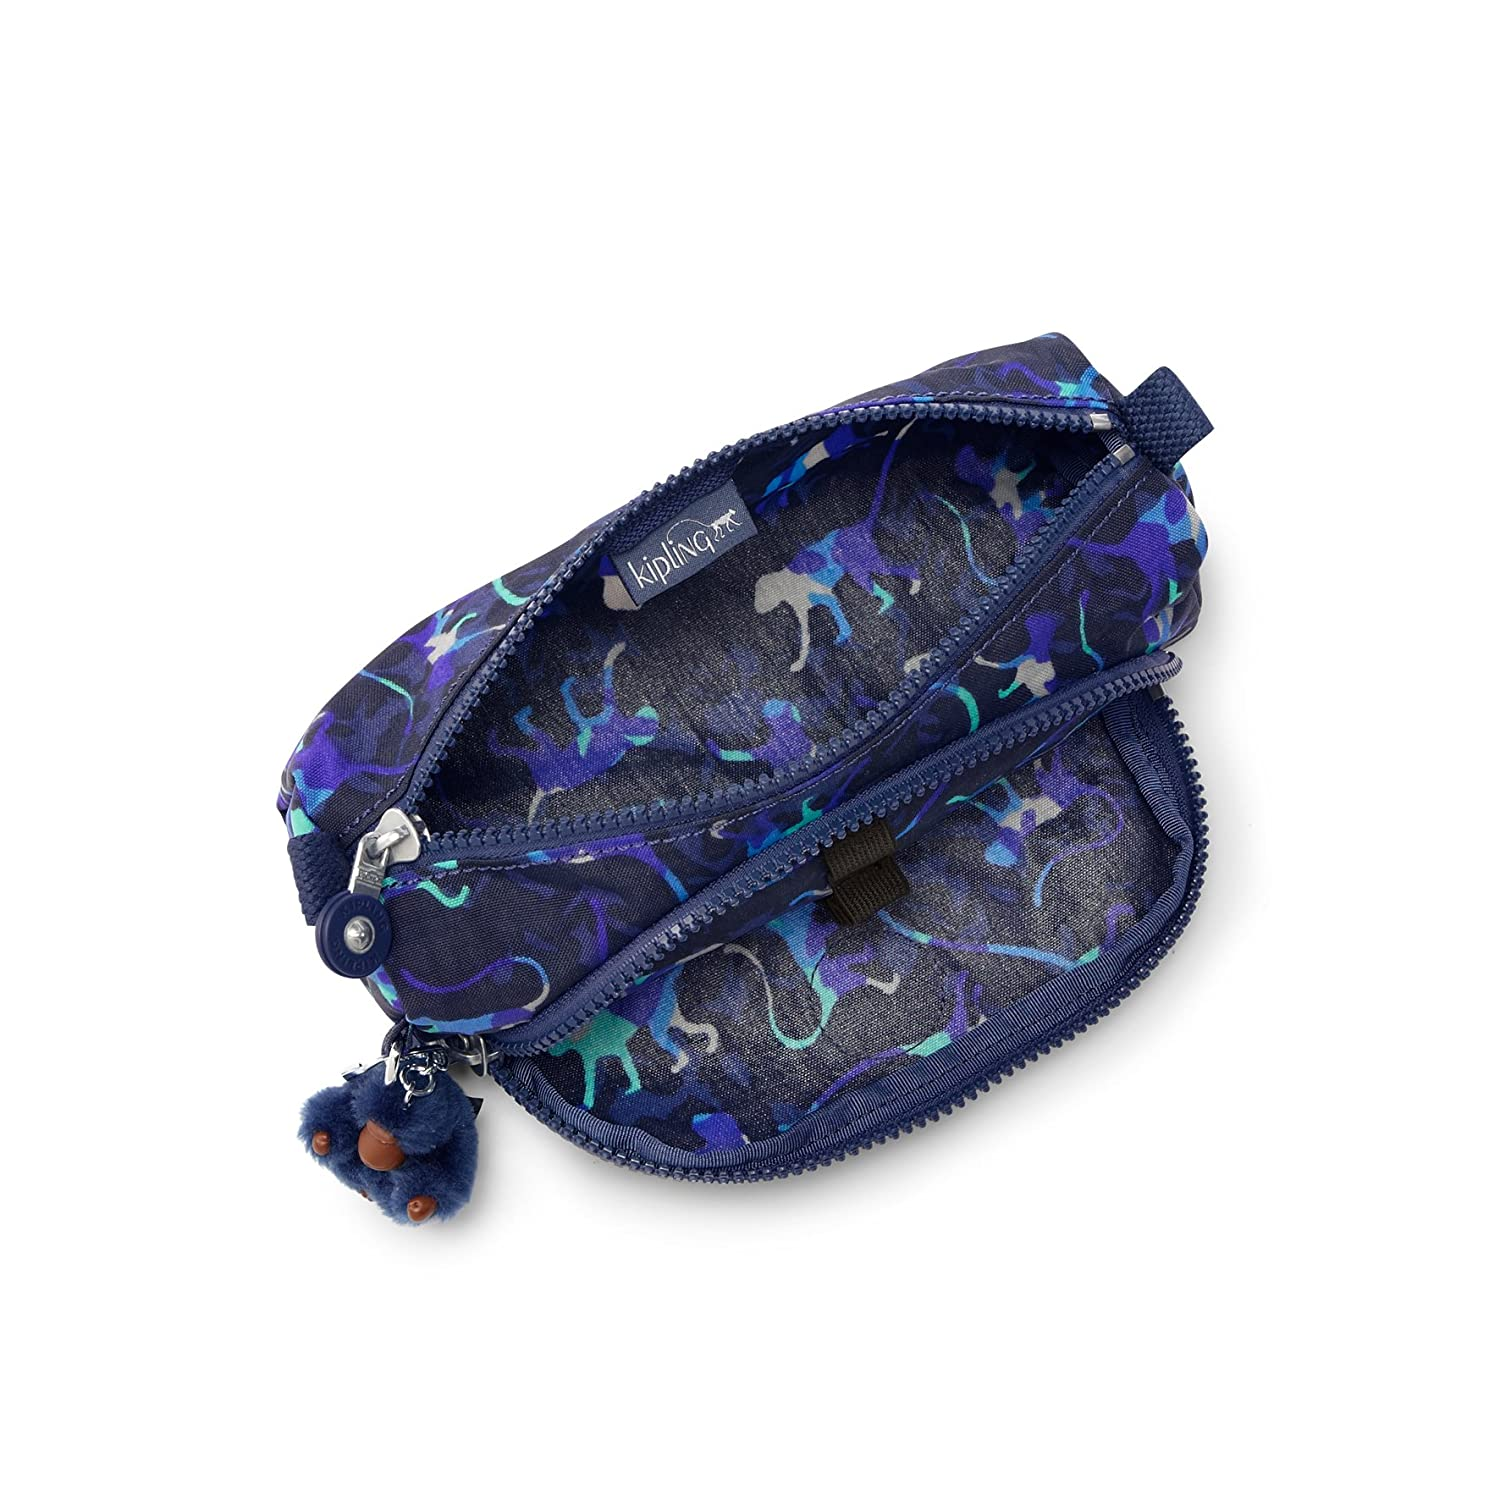 Amazon.com: Kipling School Bag Cute Blue (Camou Pr Blue) K09406B45: The Necessity limited